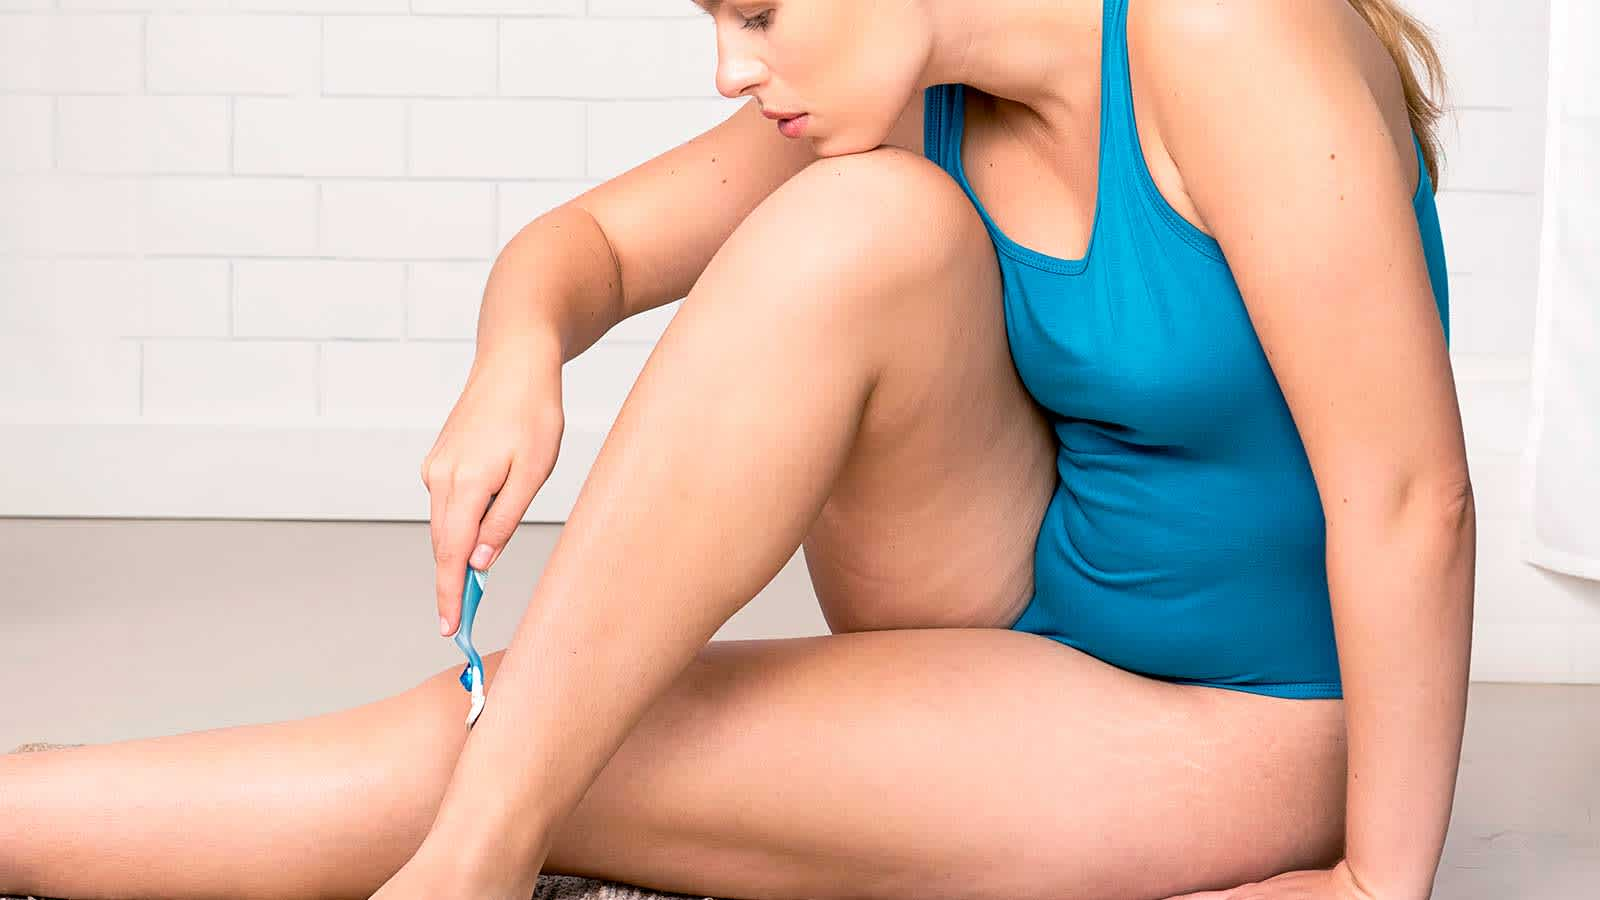 Women Carefully Shaving Her Legs with Gilette Venus Razor